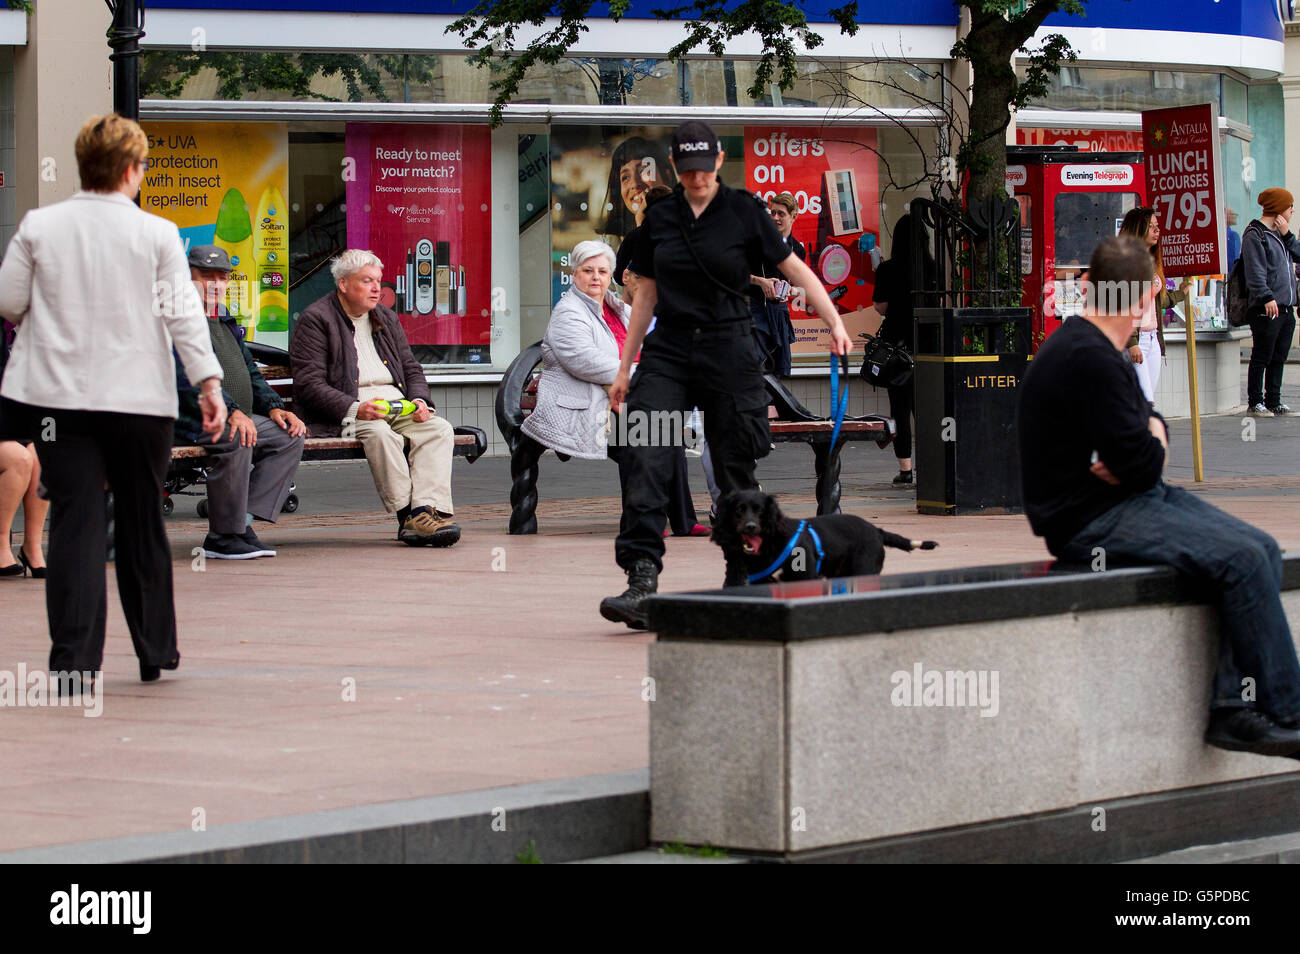 Dundee, Tayside, Scotland, UK. June 22nd 2016. A Police Scotland policewoman training a sniffer dog in Dundee city - Stock Image